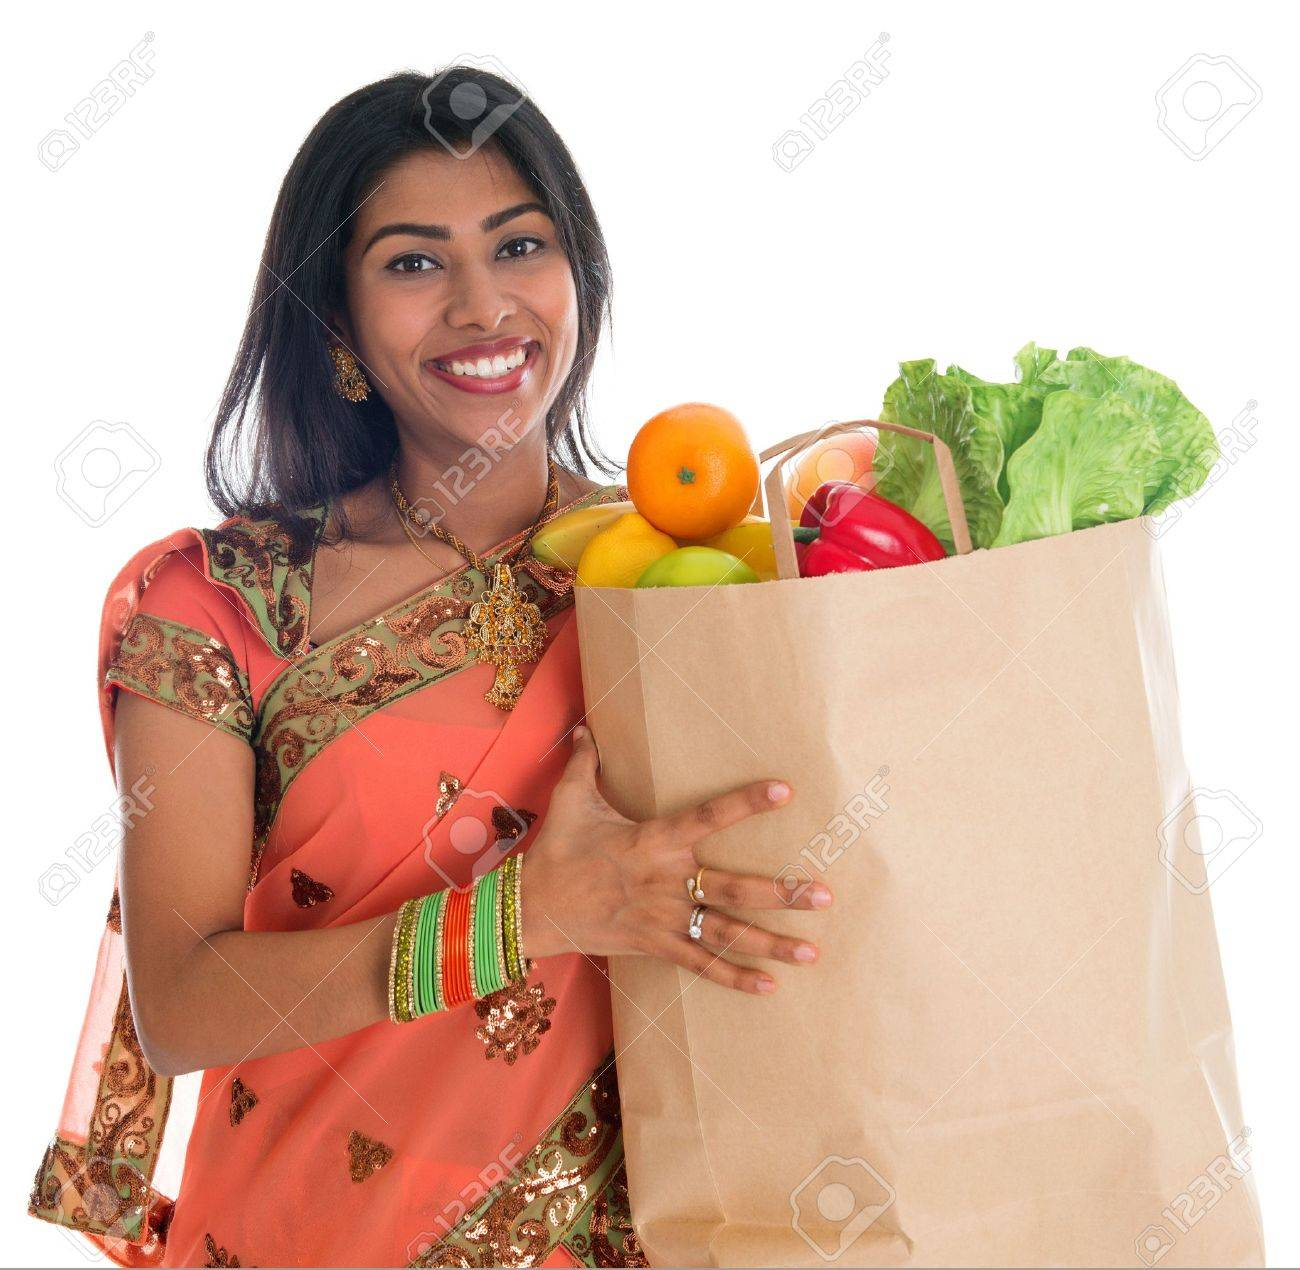 Happy grocery shopper. Portrait of beautiful traditional Indian woman in sari dress holding paper shopping bag full of groceries isolated on white. Stock Photo - 21621308